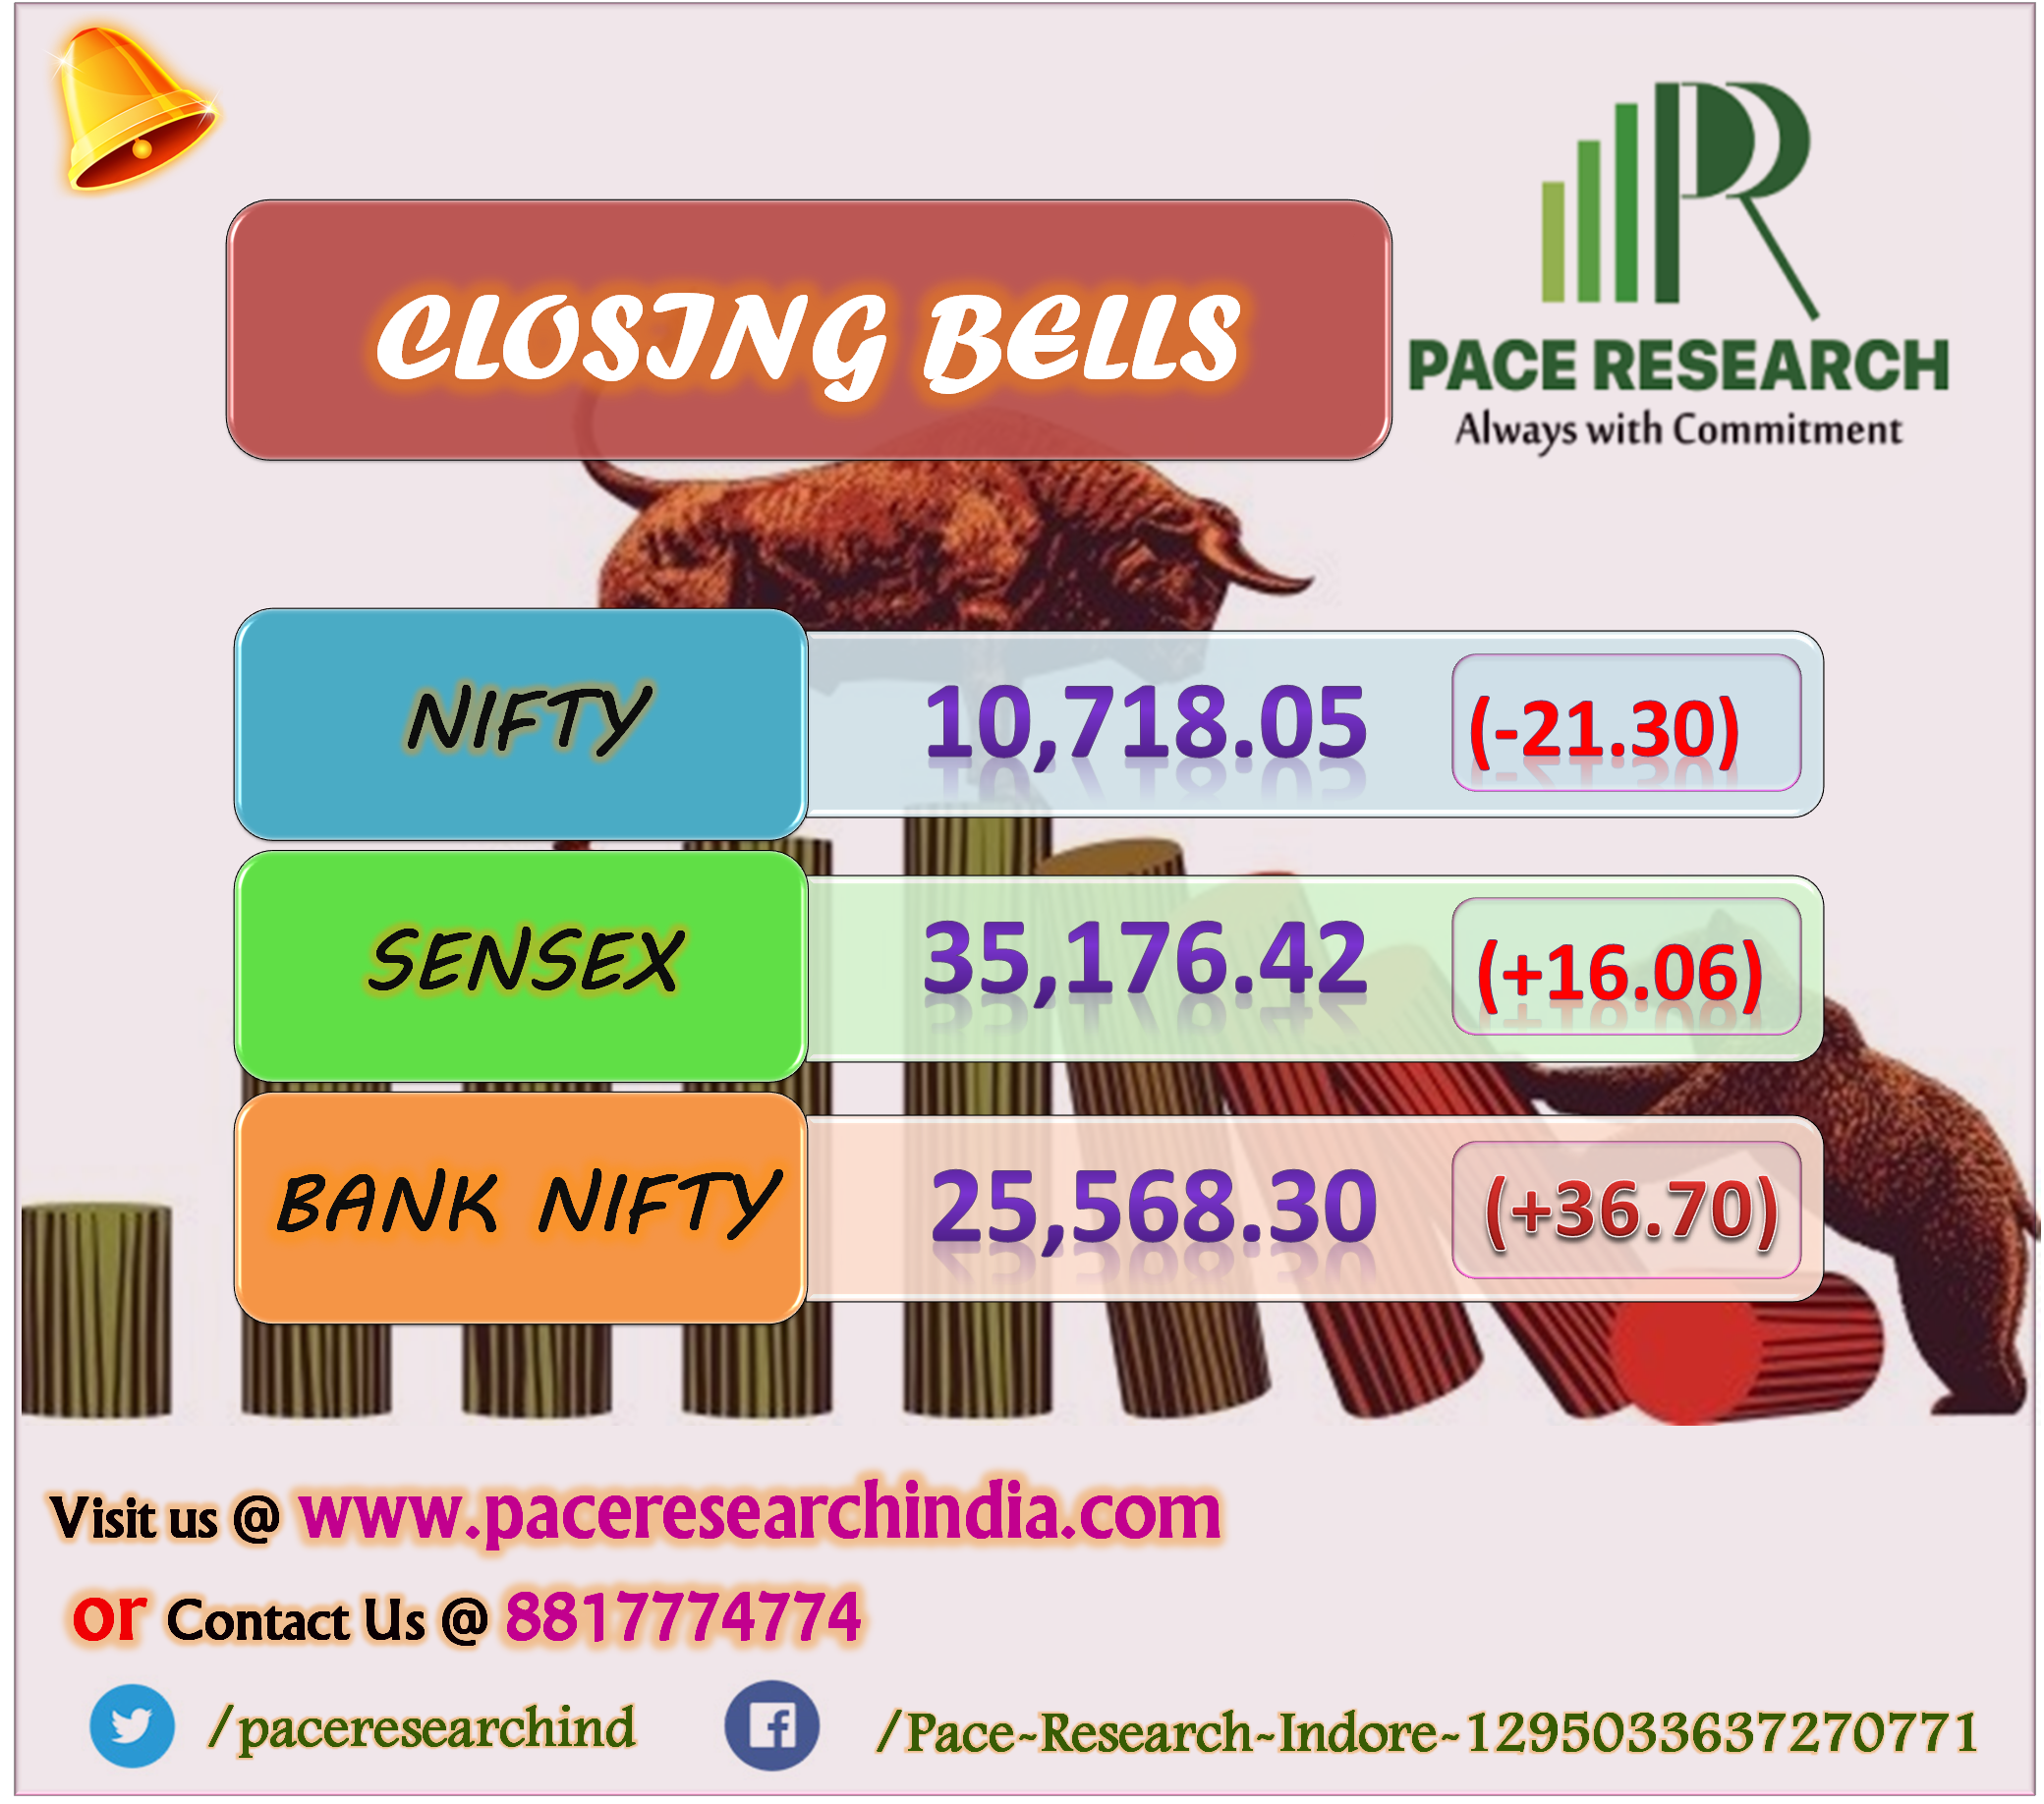 The 30 Share Bse Sensex Was Up 16 06 Points At 35 176 42 And The 50 Share Nse Nifty Fell 21 40 Points To 10 718 Vedanta Nifty Positive Notes Hcl Technologies